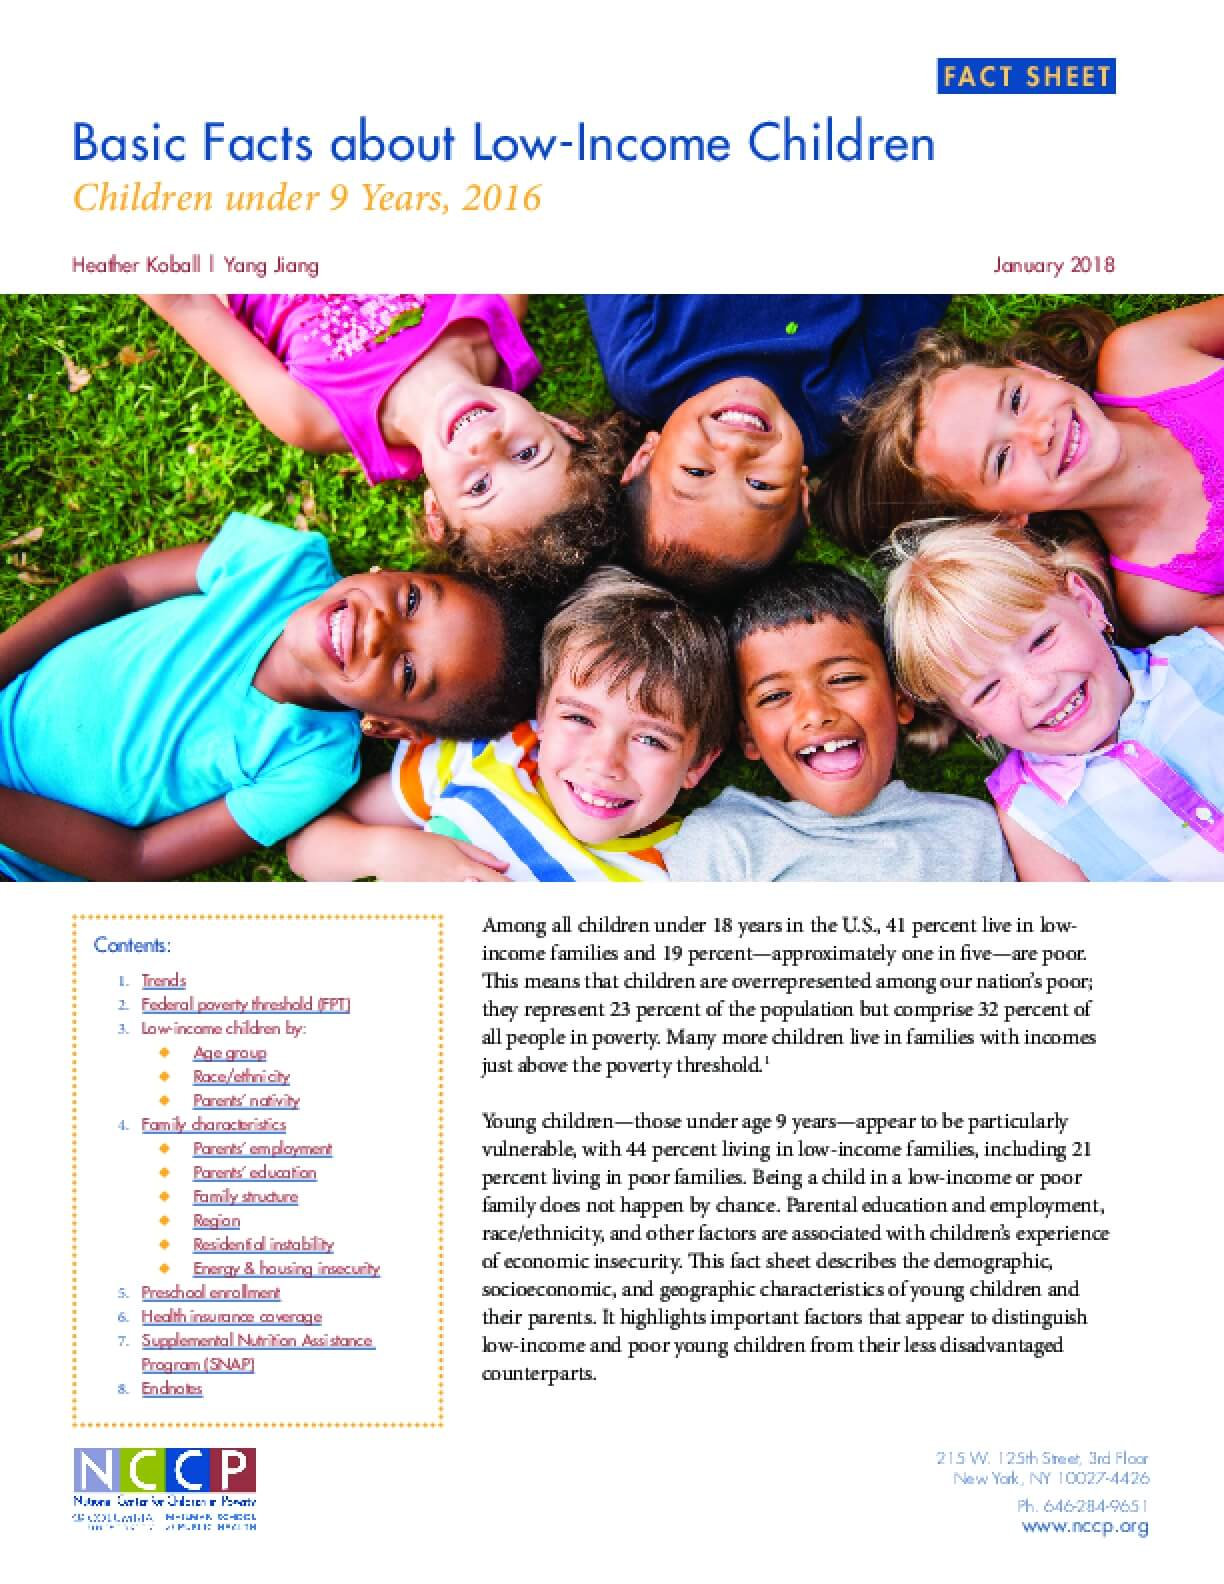 Basic Facts about Low-Income Children Children under 9 Years, 2016